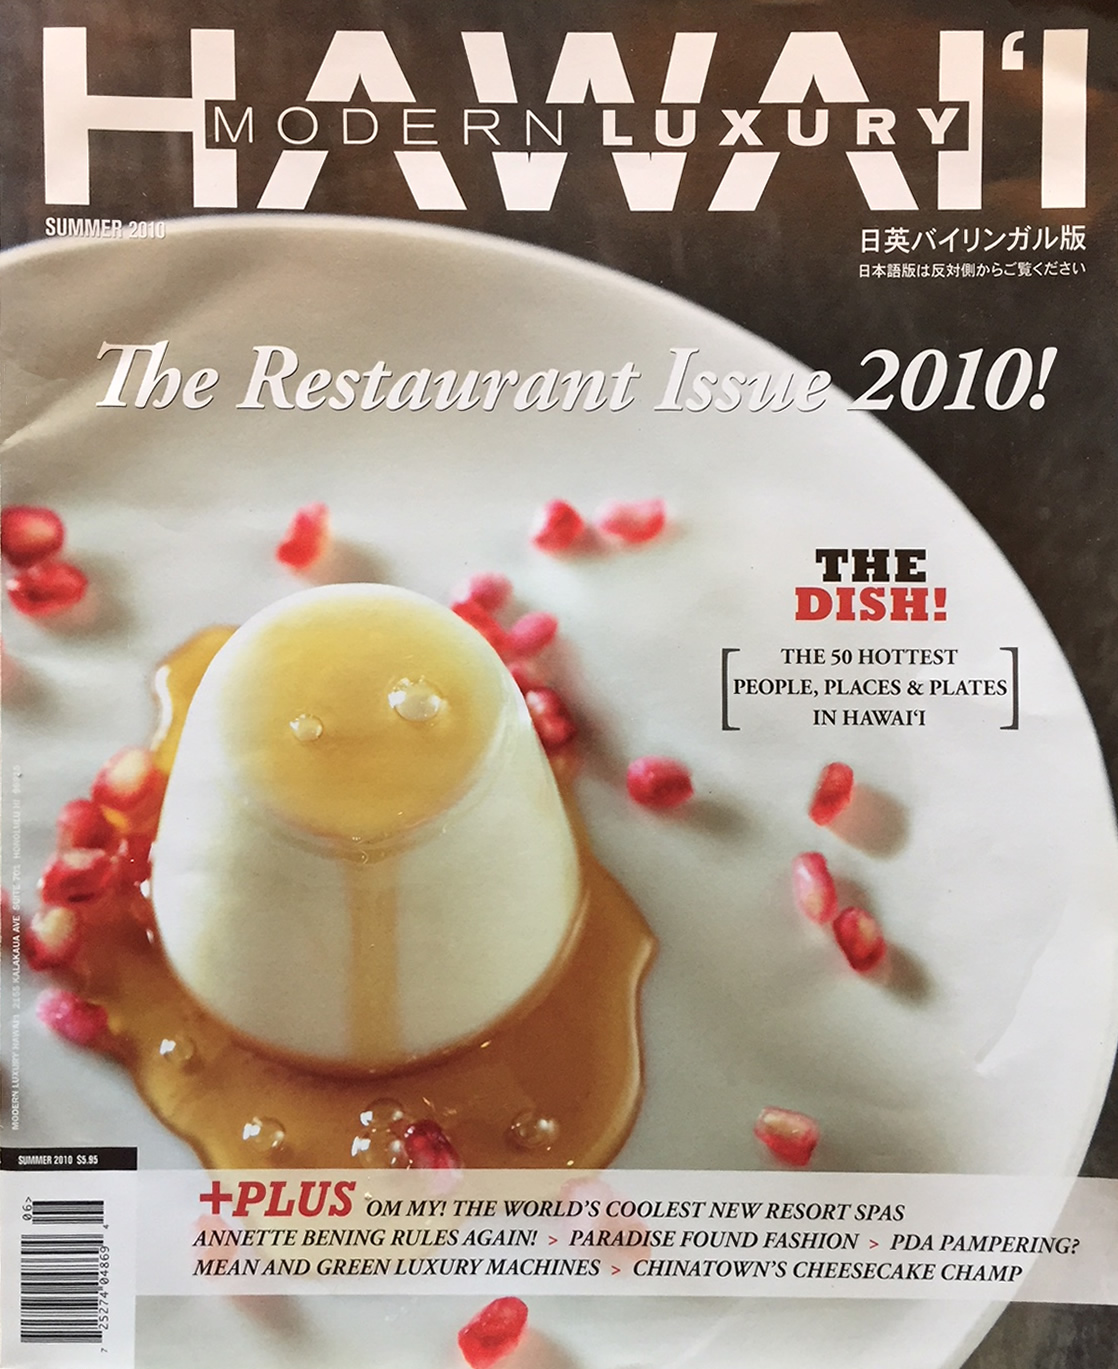 Modern Luxury Hawaii Magazine